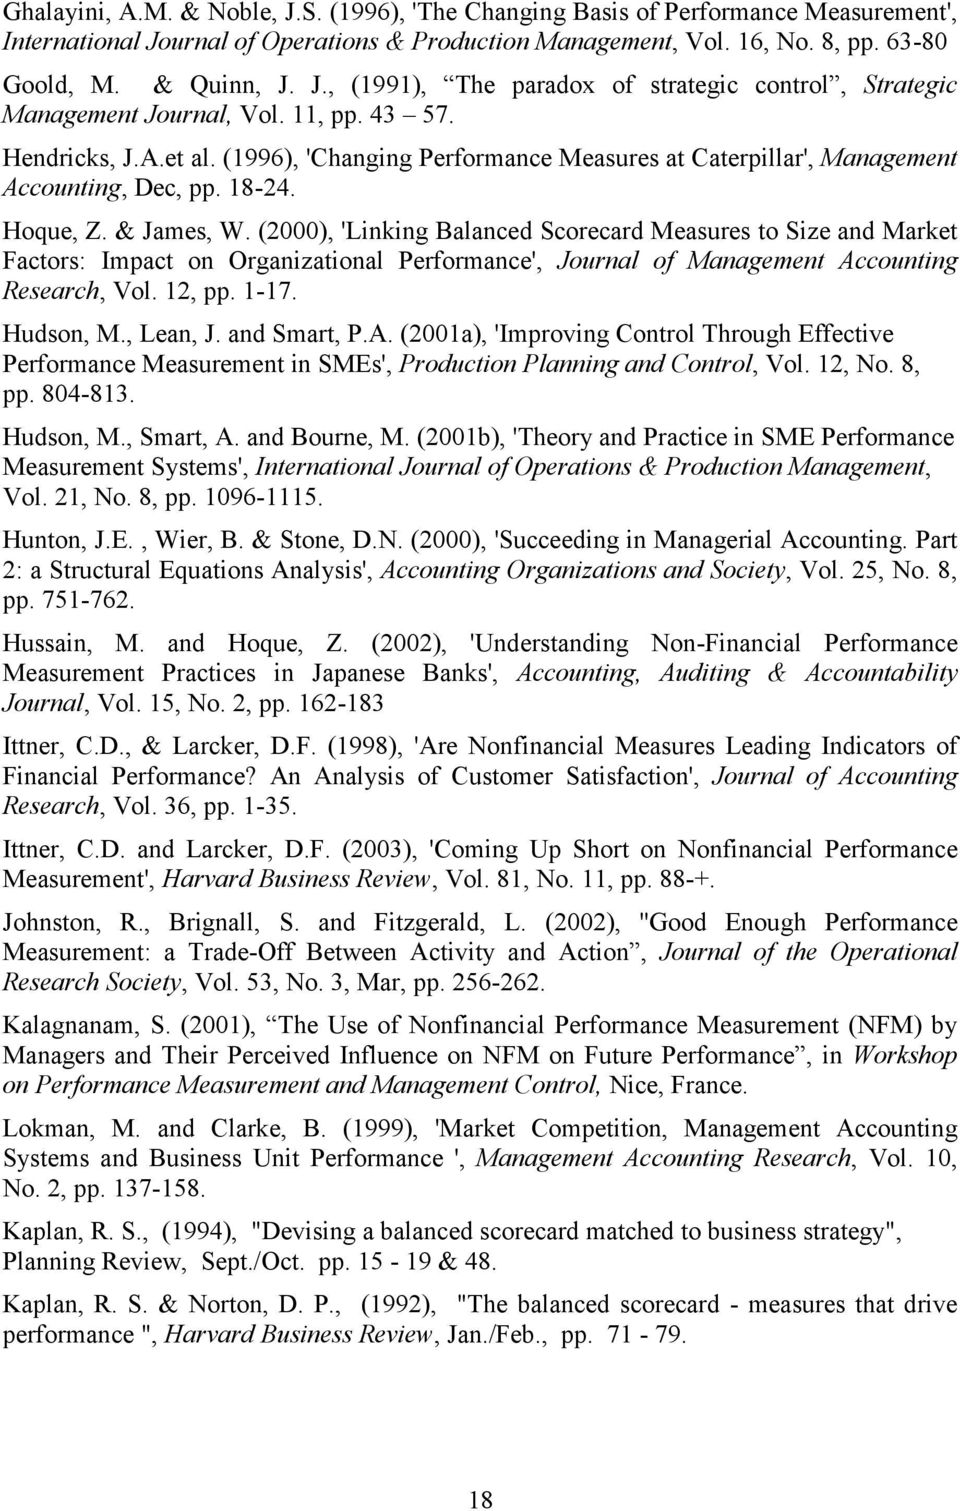 (2000), 'Linking Balanced Scorecard Measures to Size and Market Factors: Impact on Organizational Performance', Journal of Management Accounting Research, Vol. 12, pp. 1-17. Hudson, M., Lean, J.